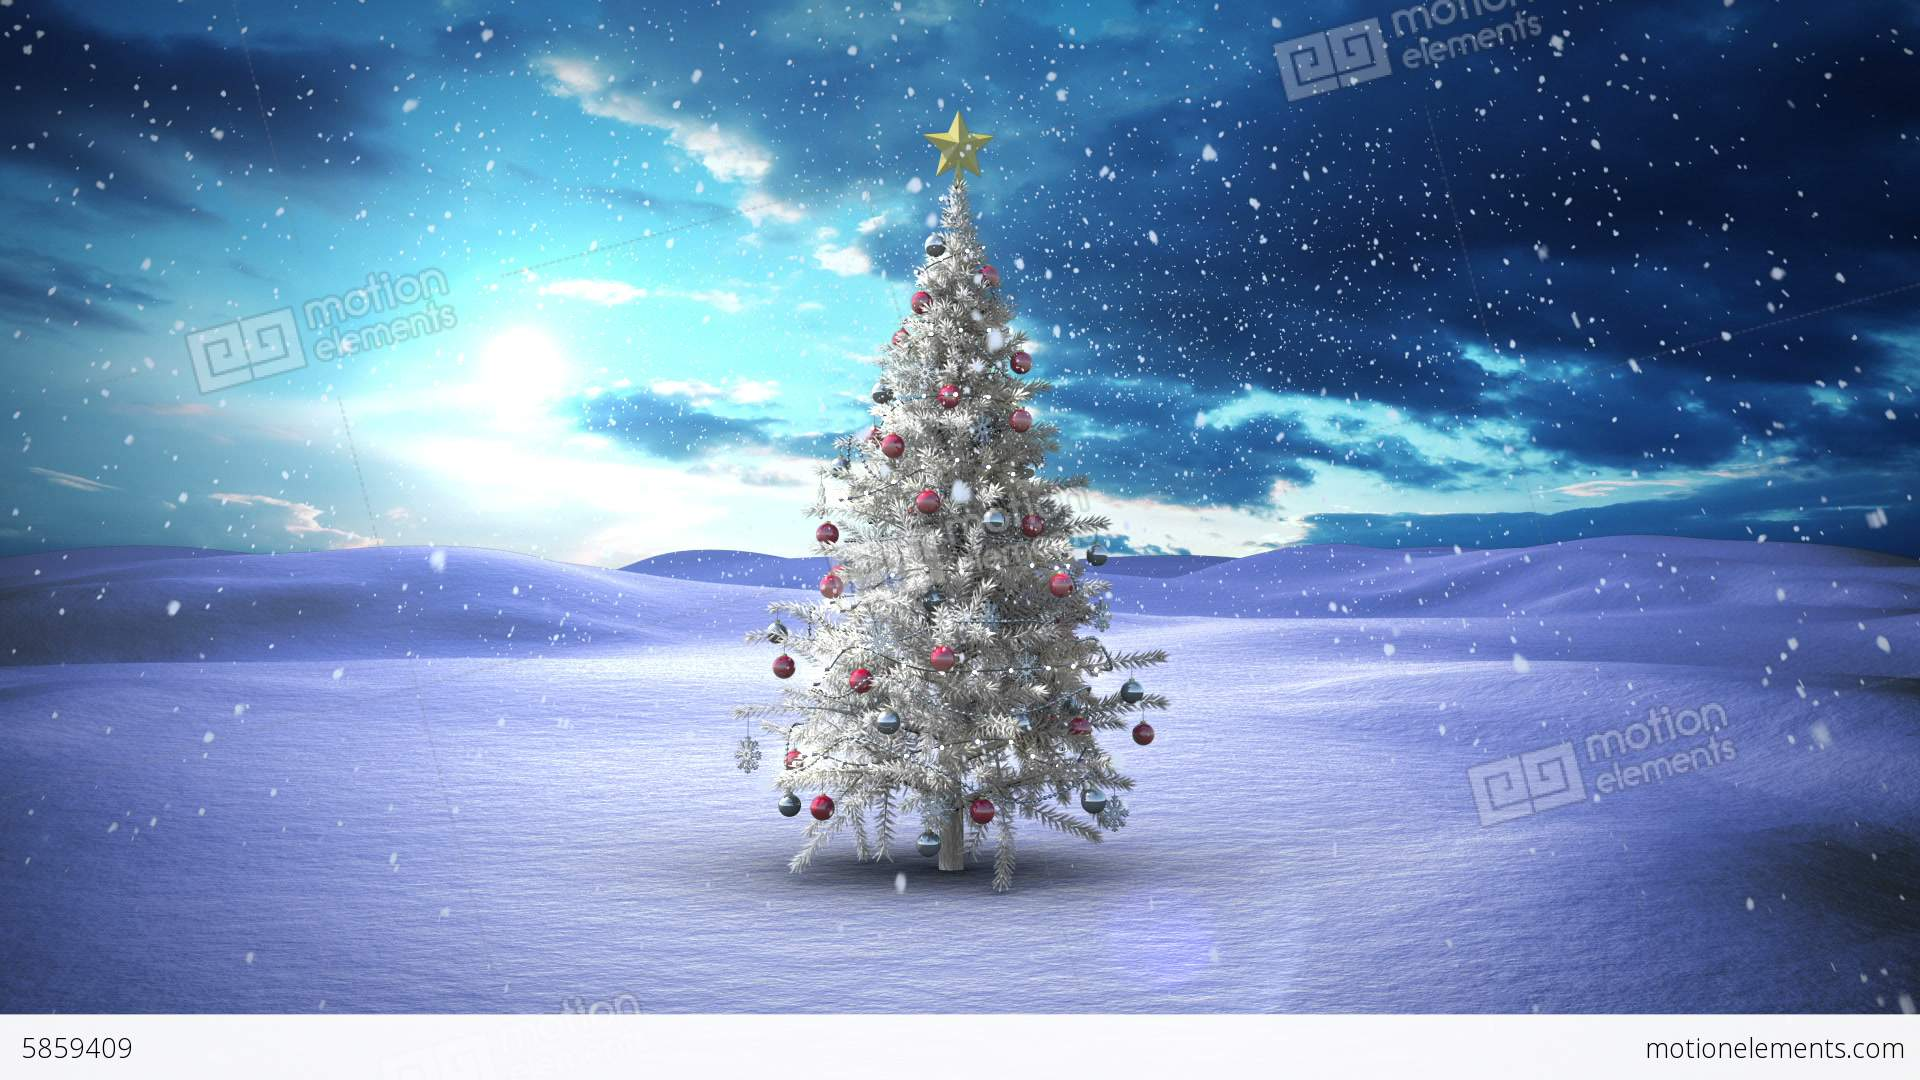 snow falling christmas tree in snowy landscape stock. Black Bedroom Furniture Sets. Home Design Ideas